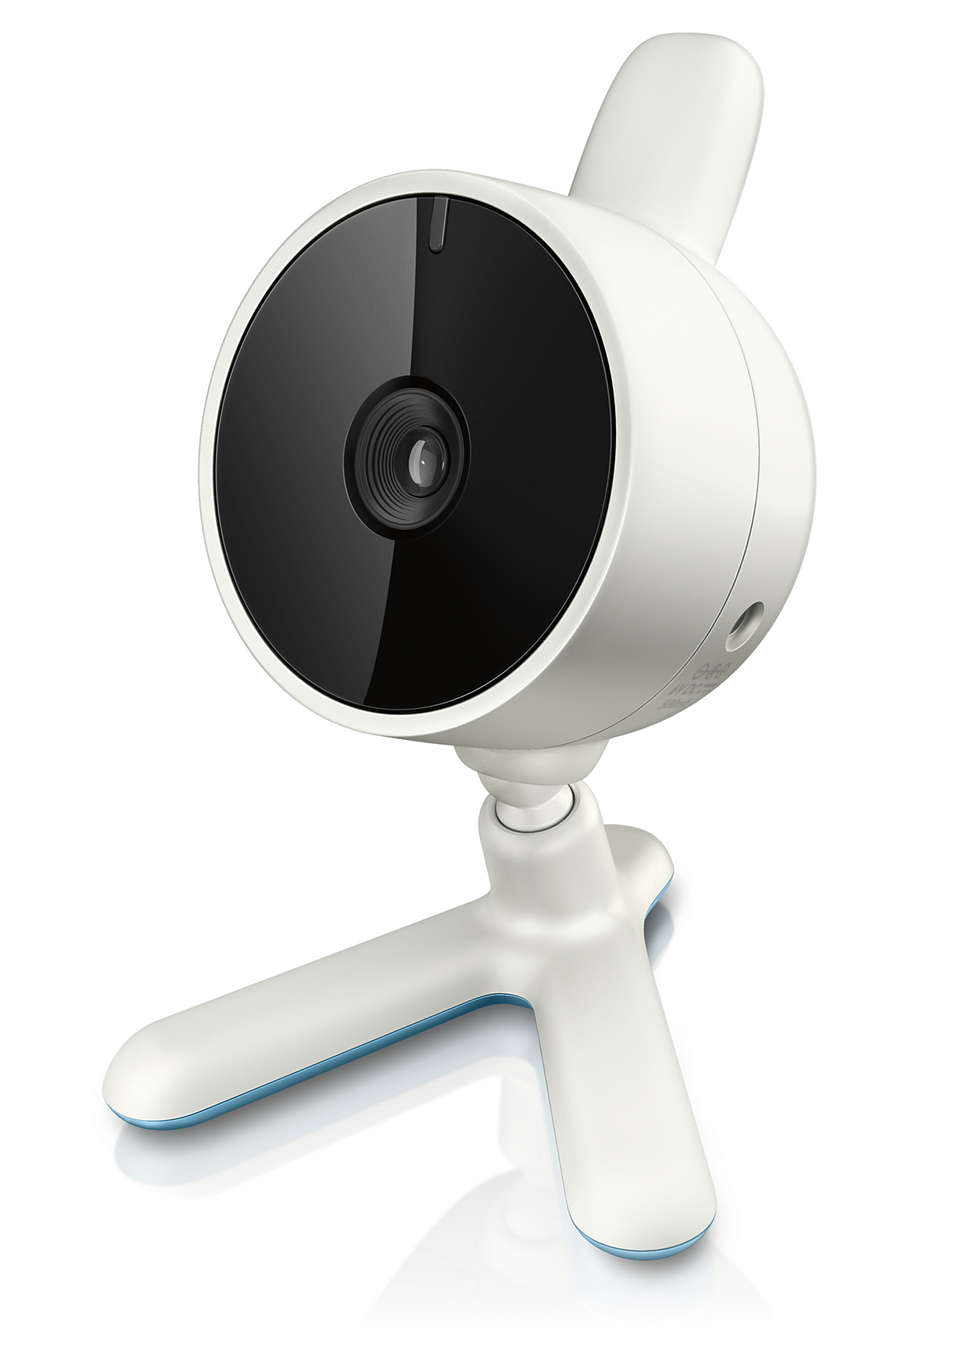 Extra camera for your growing family